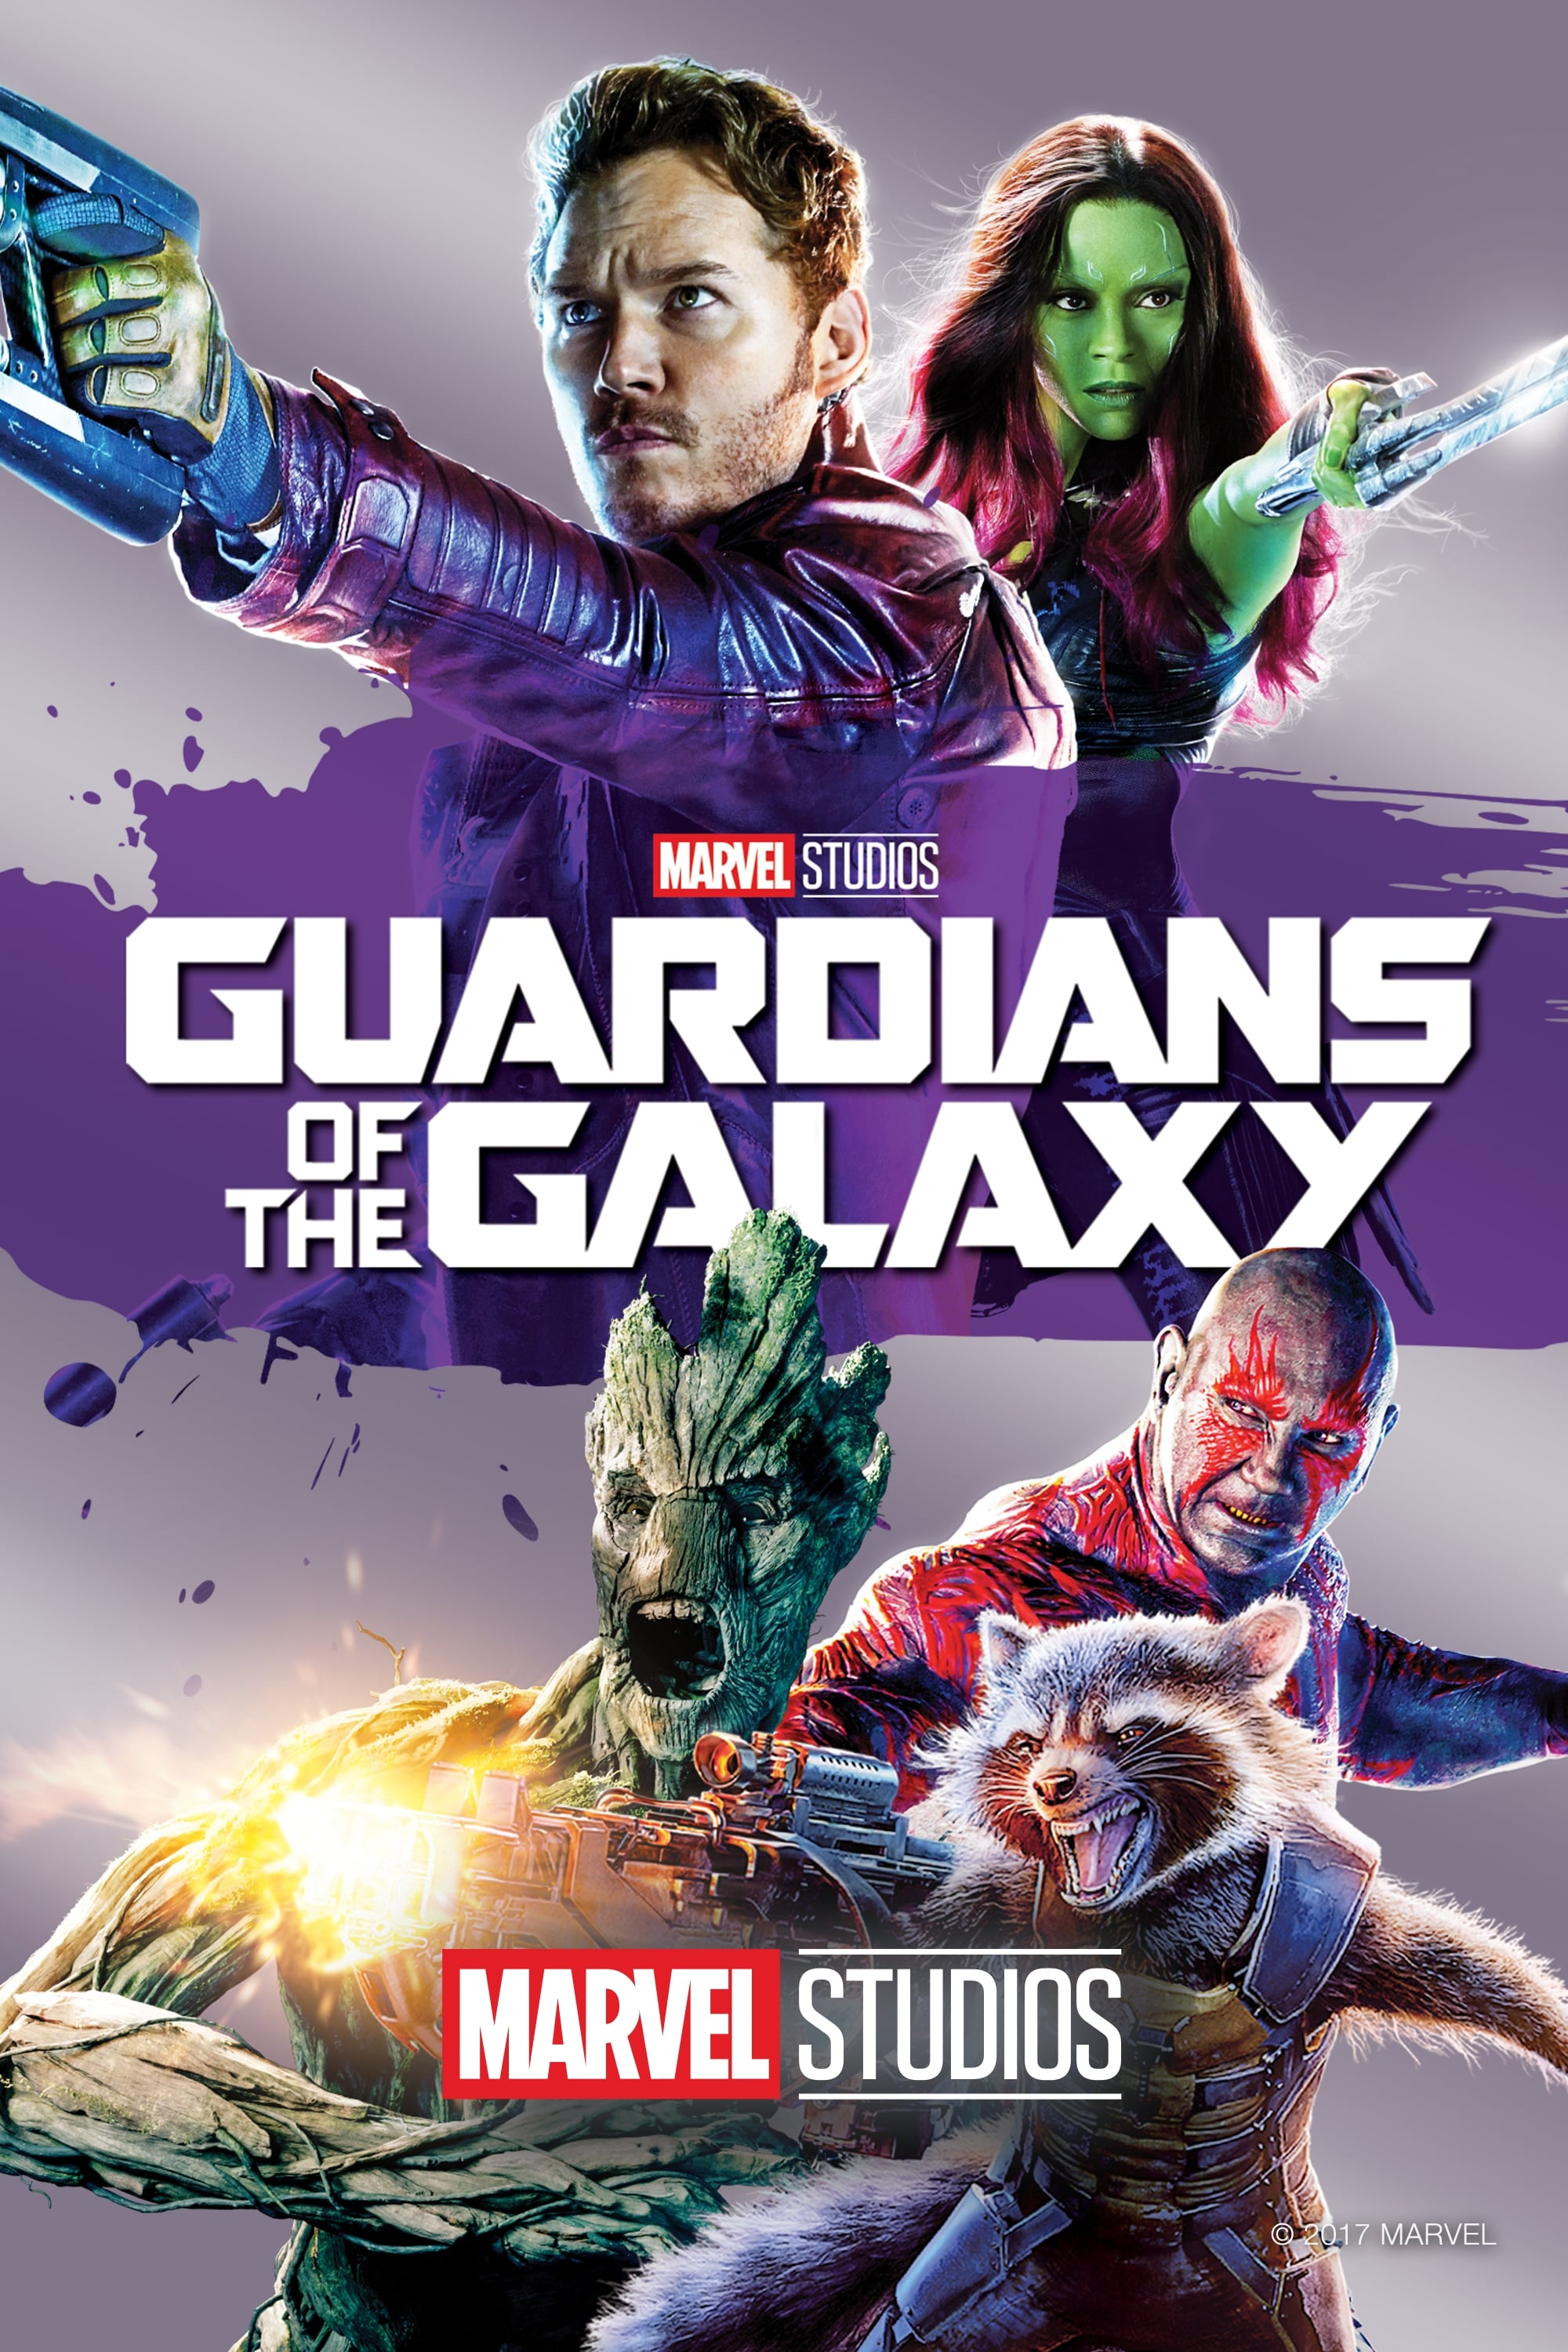 Guardians Of The Galaxy 2 Release